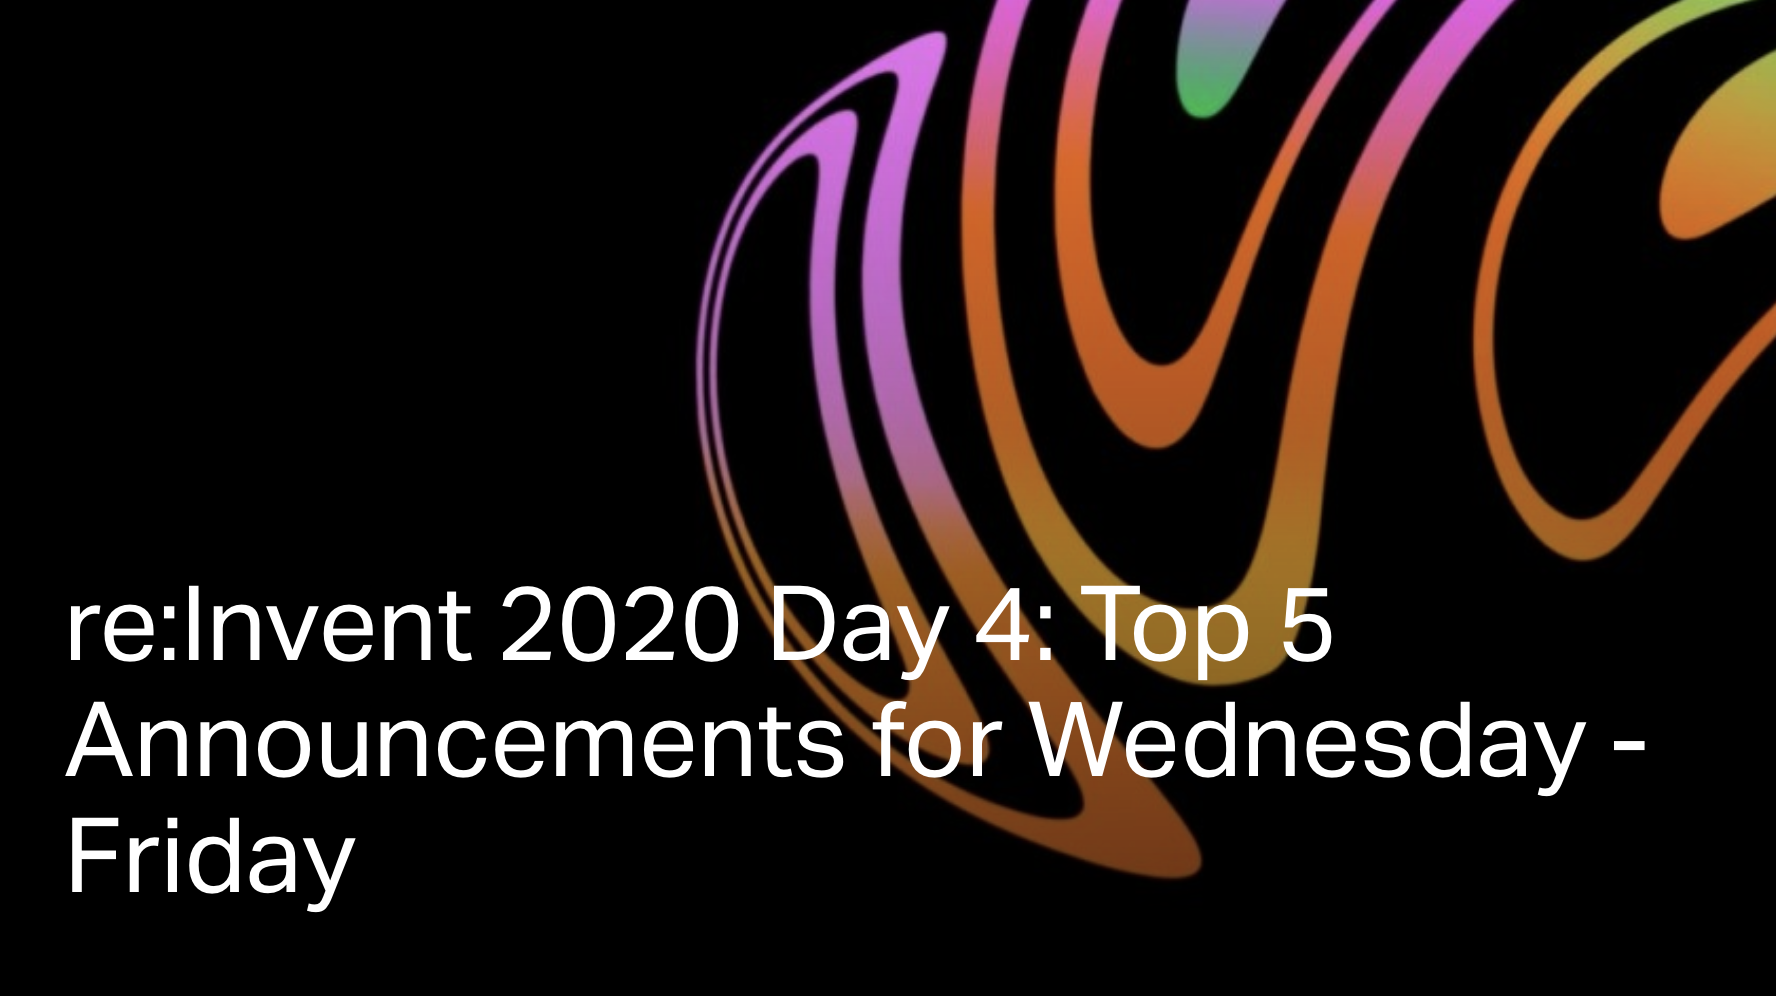 AWS re:Invent 2020 Day 4: Top 5 Announcements for Wednesday - Friday